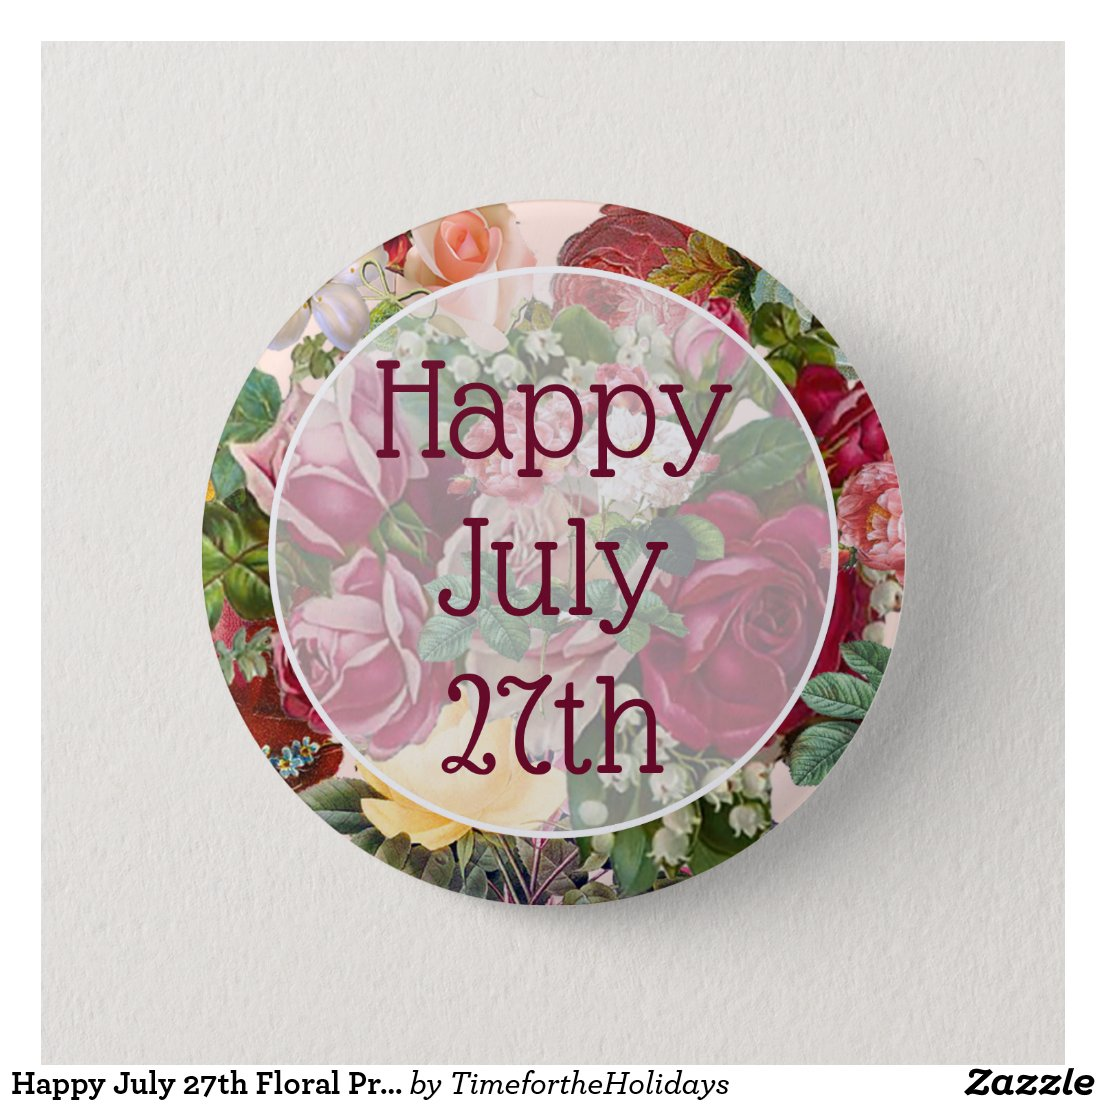 Happy July 27th Floral Pretty Happy Message Button